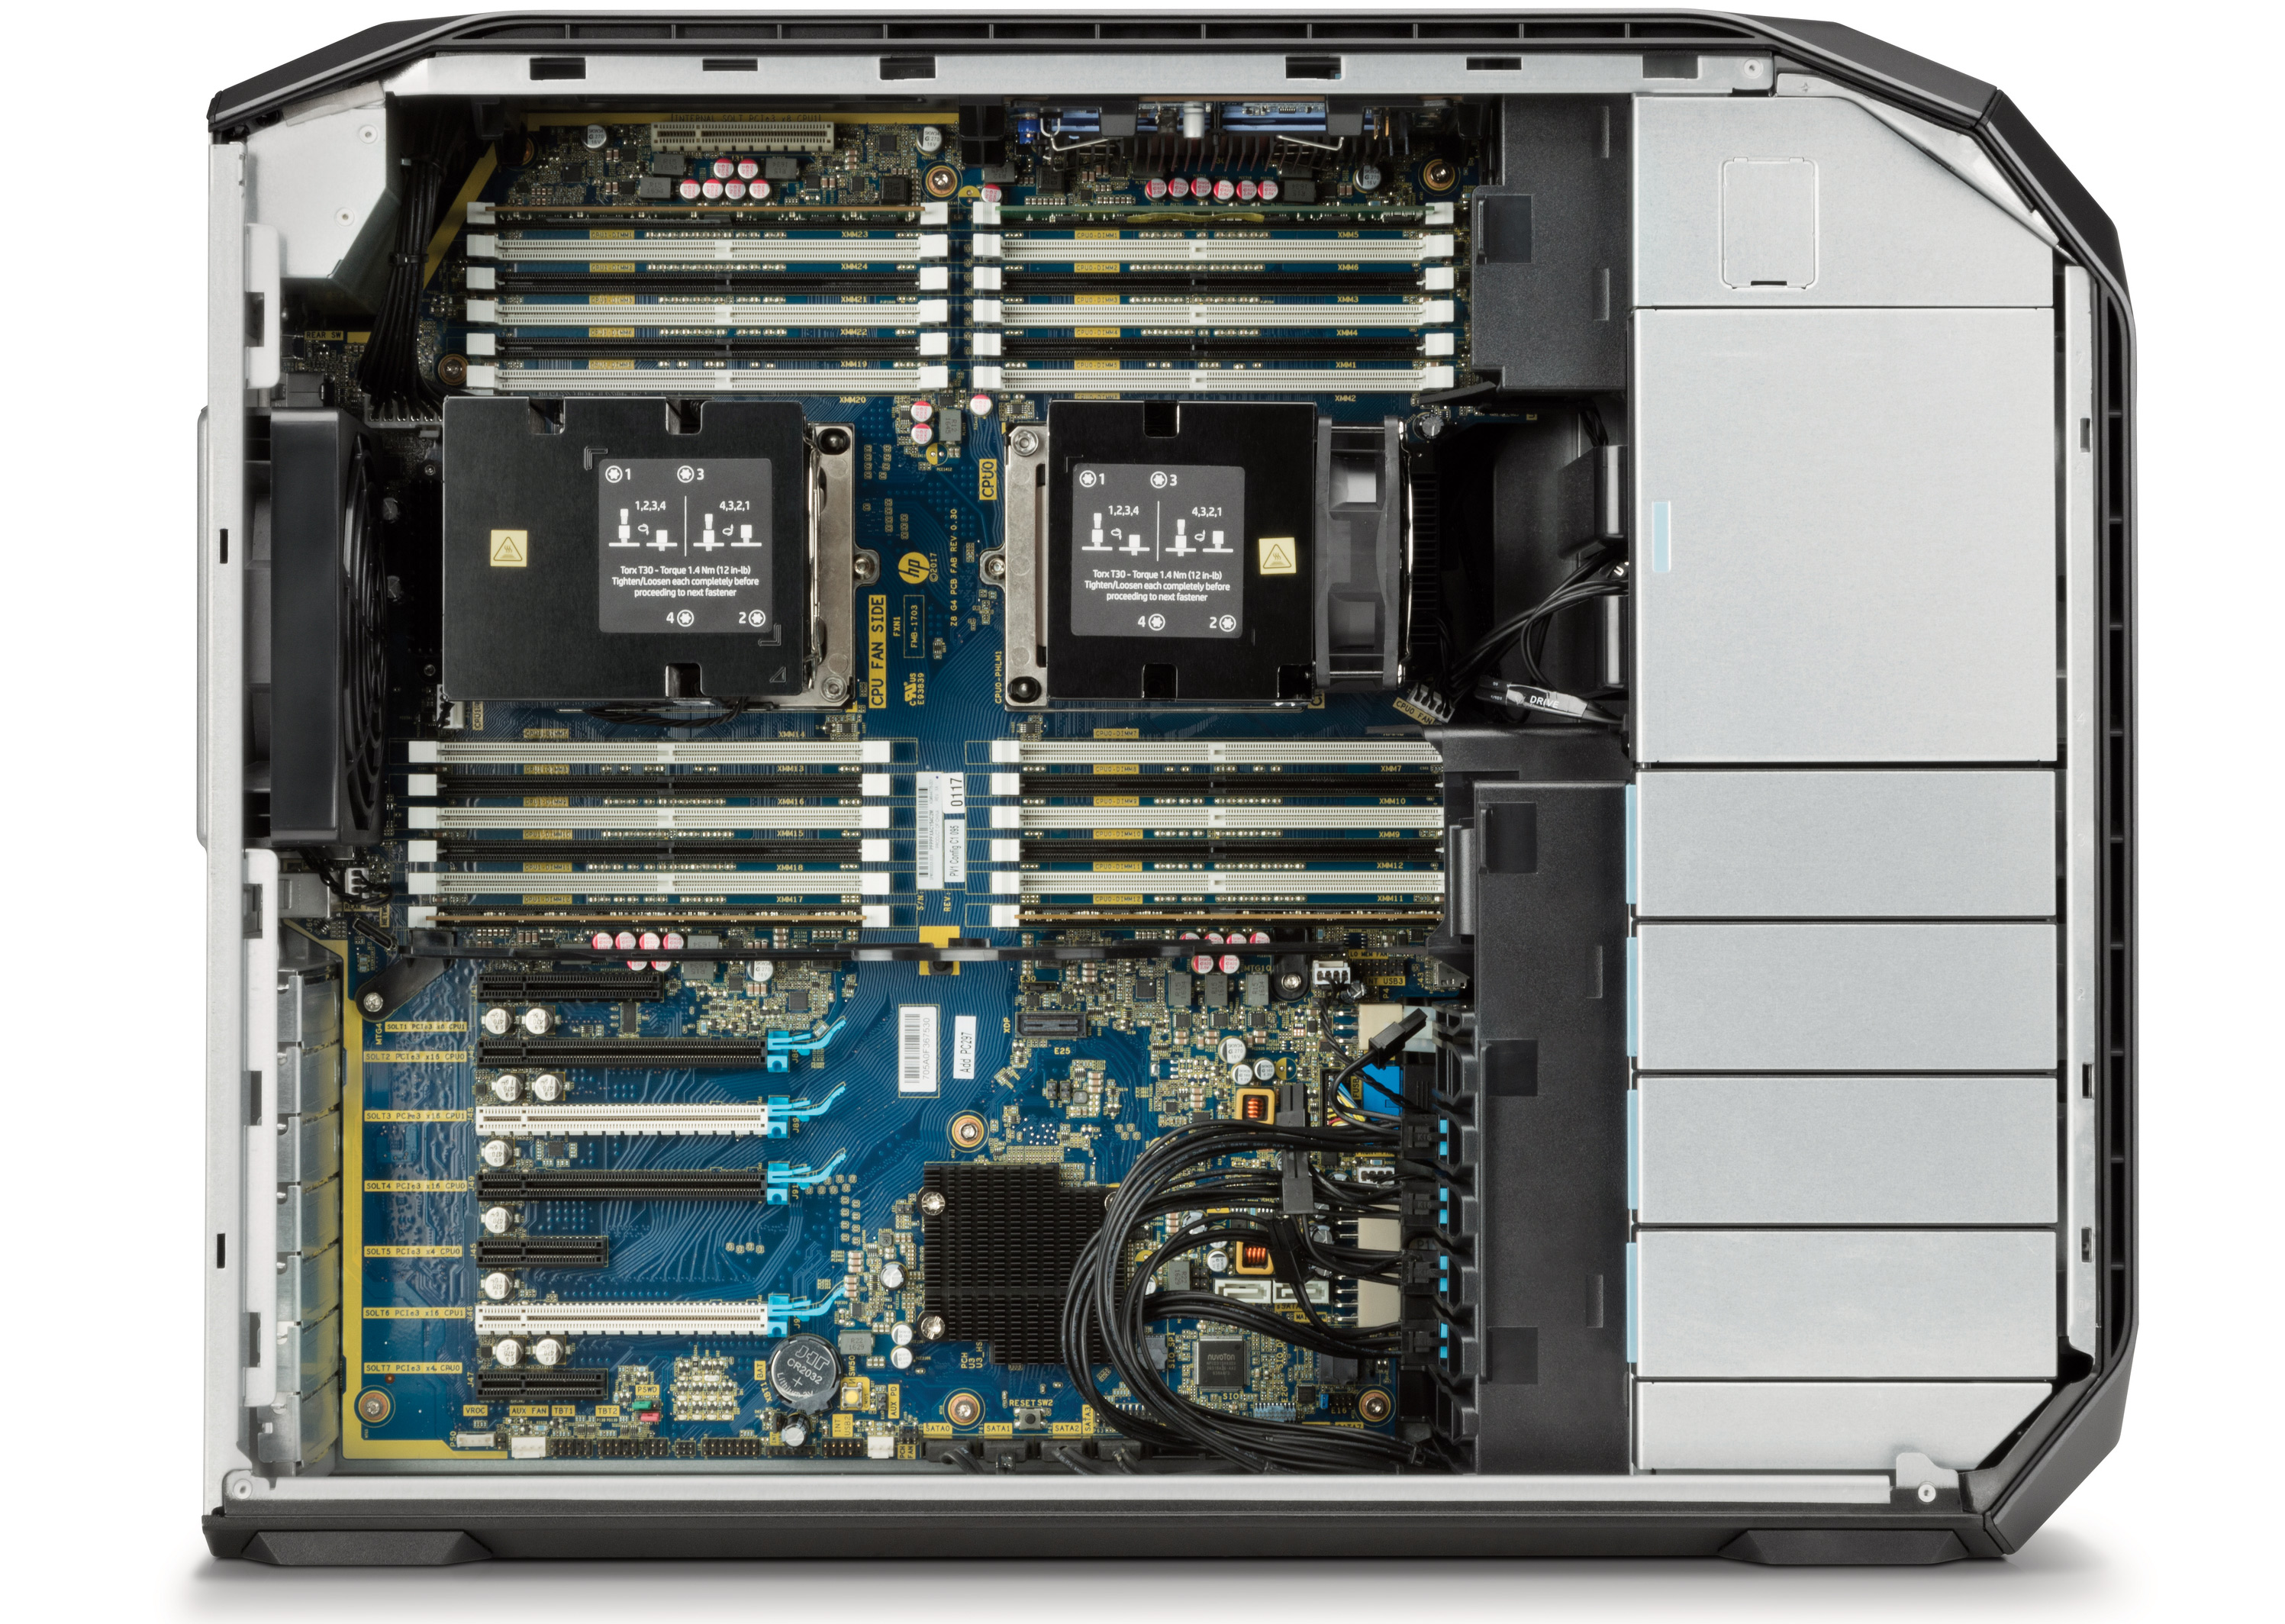 HP Updates Z8 Workstations: Up to 56 Cores, 3 TB RAM, 9 PCIe